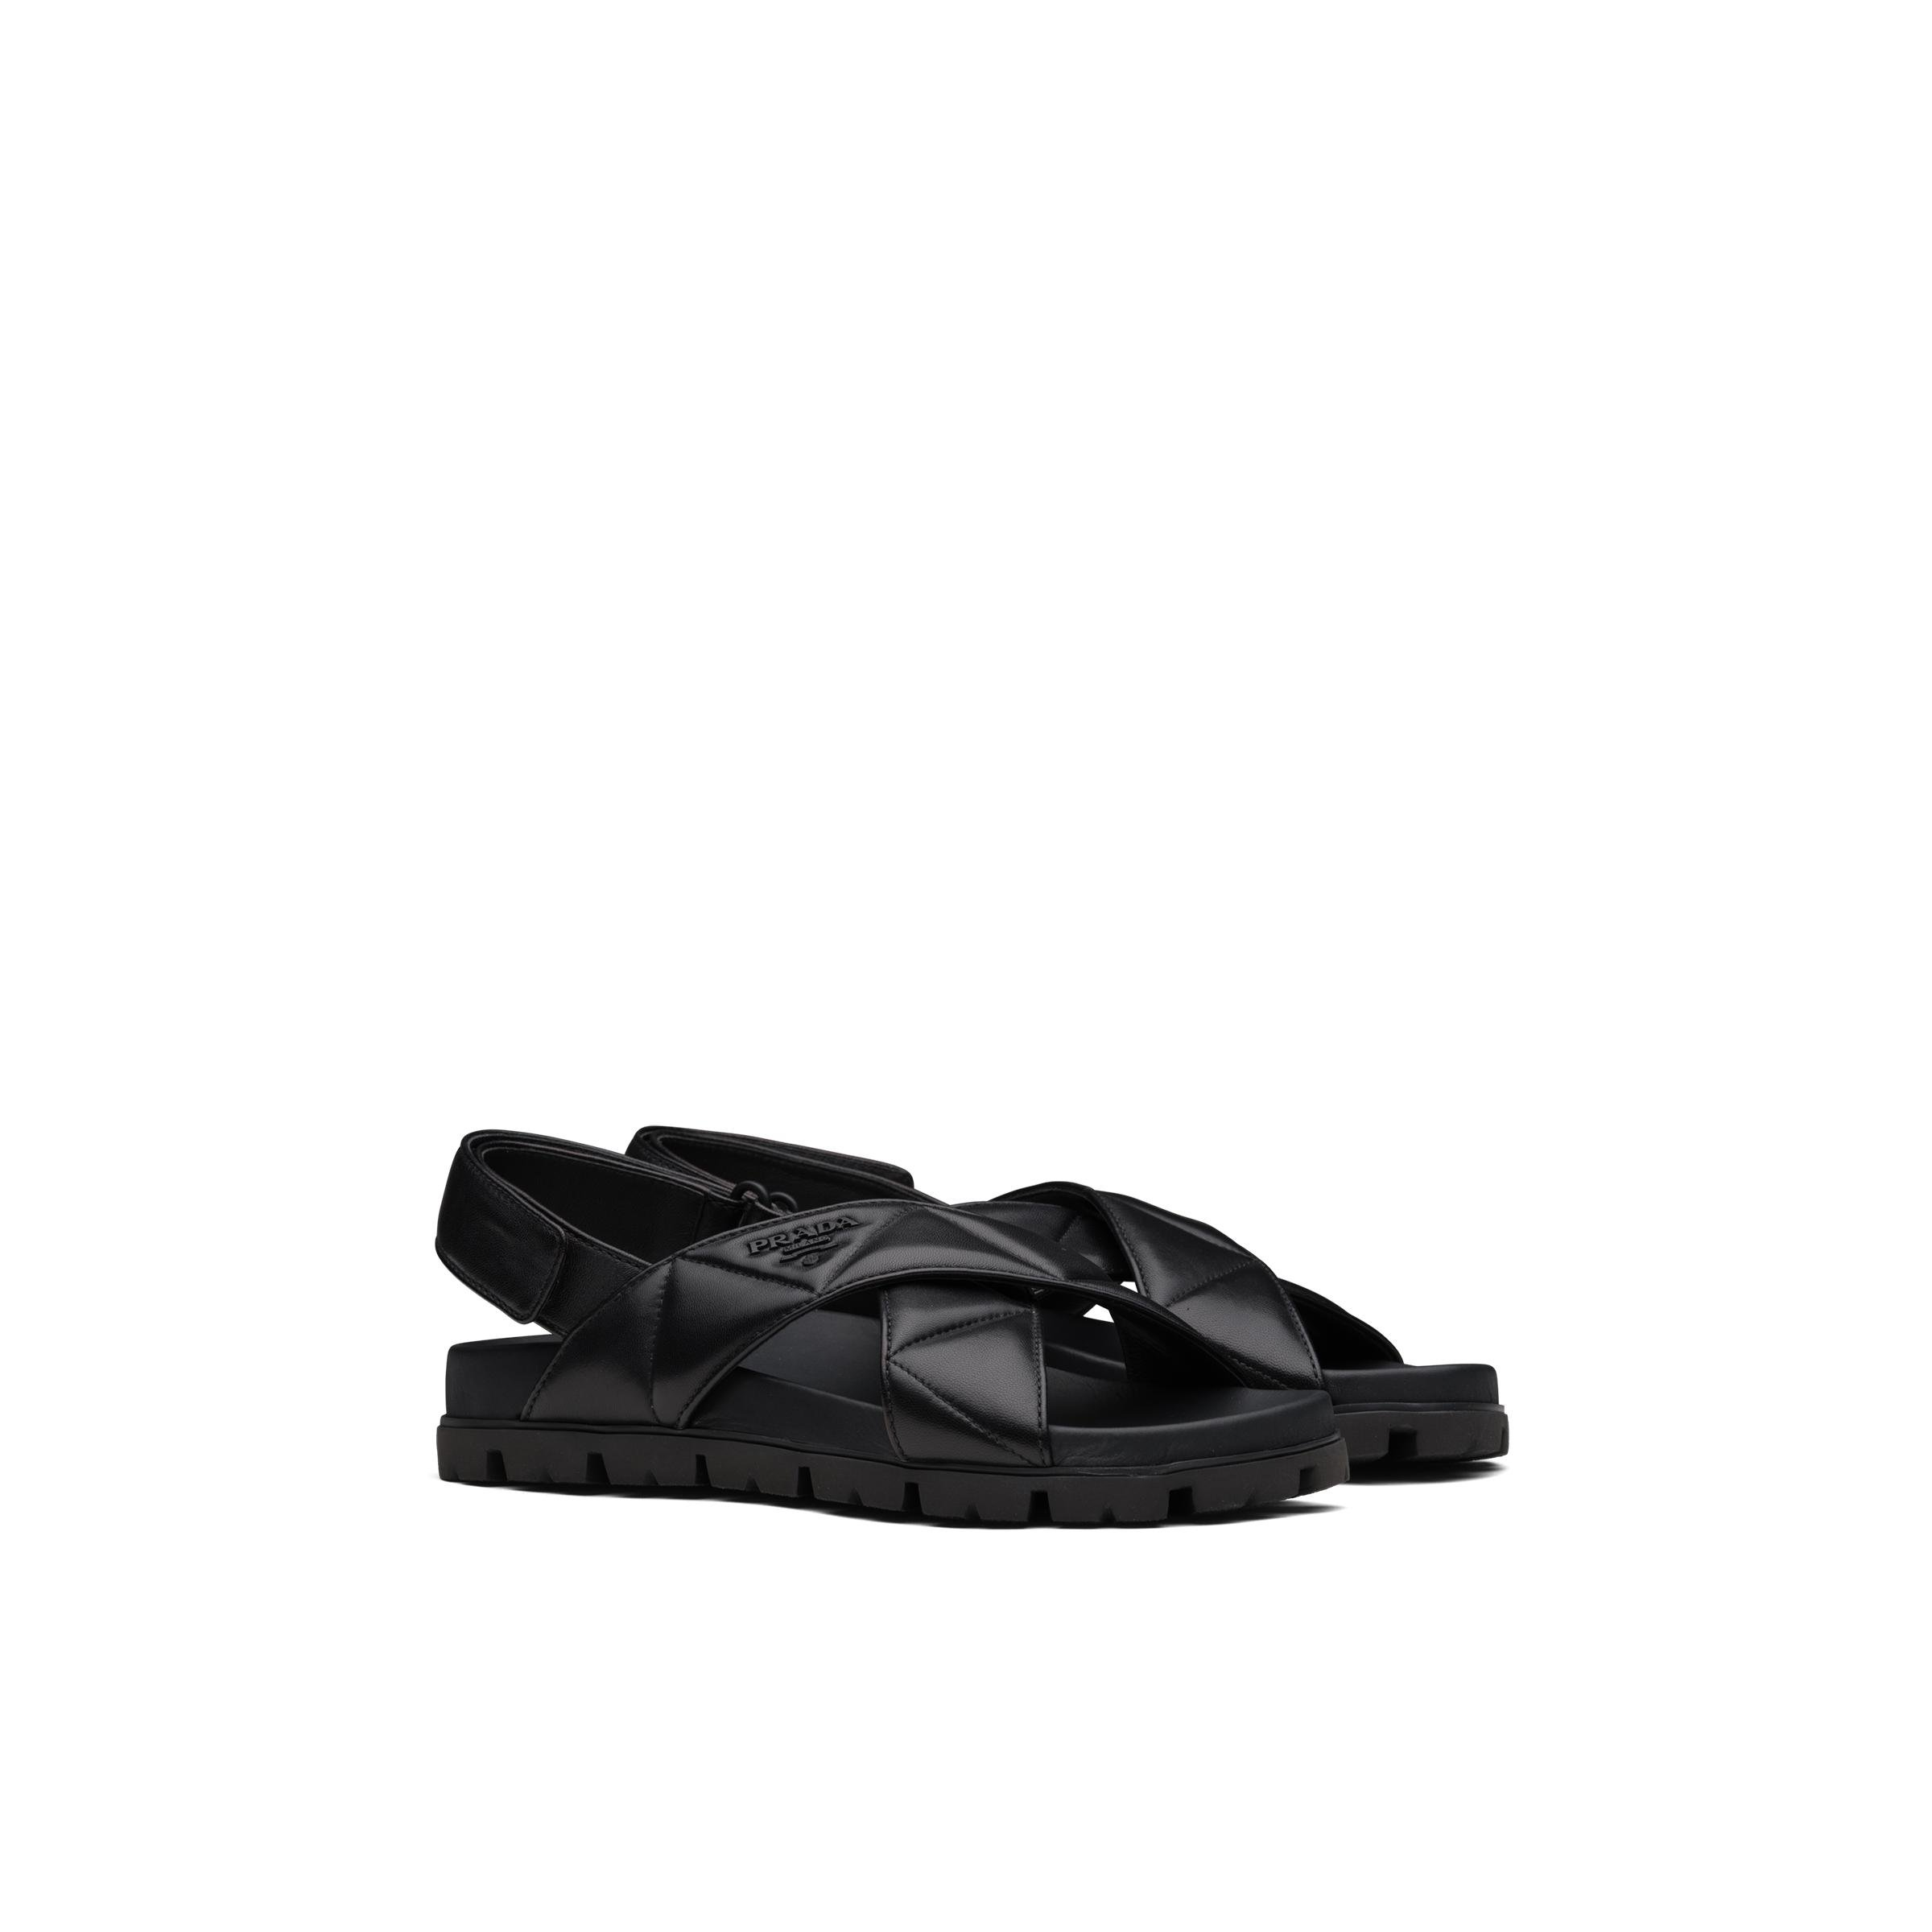 Sporty Quilted Nappa Leather Sandals Women Black